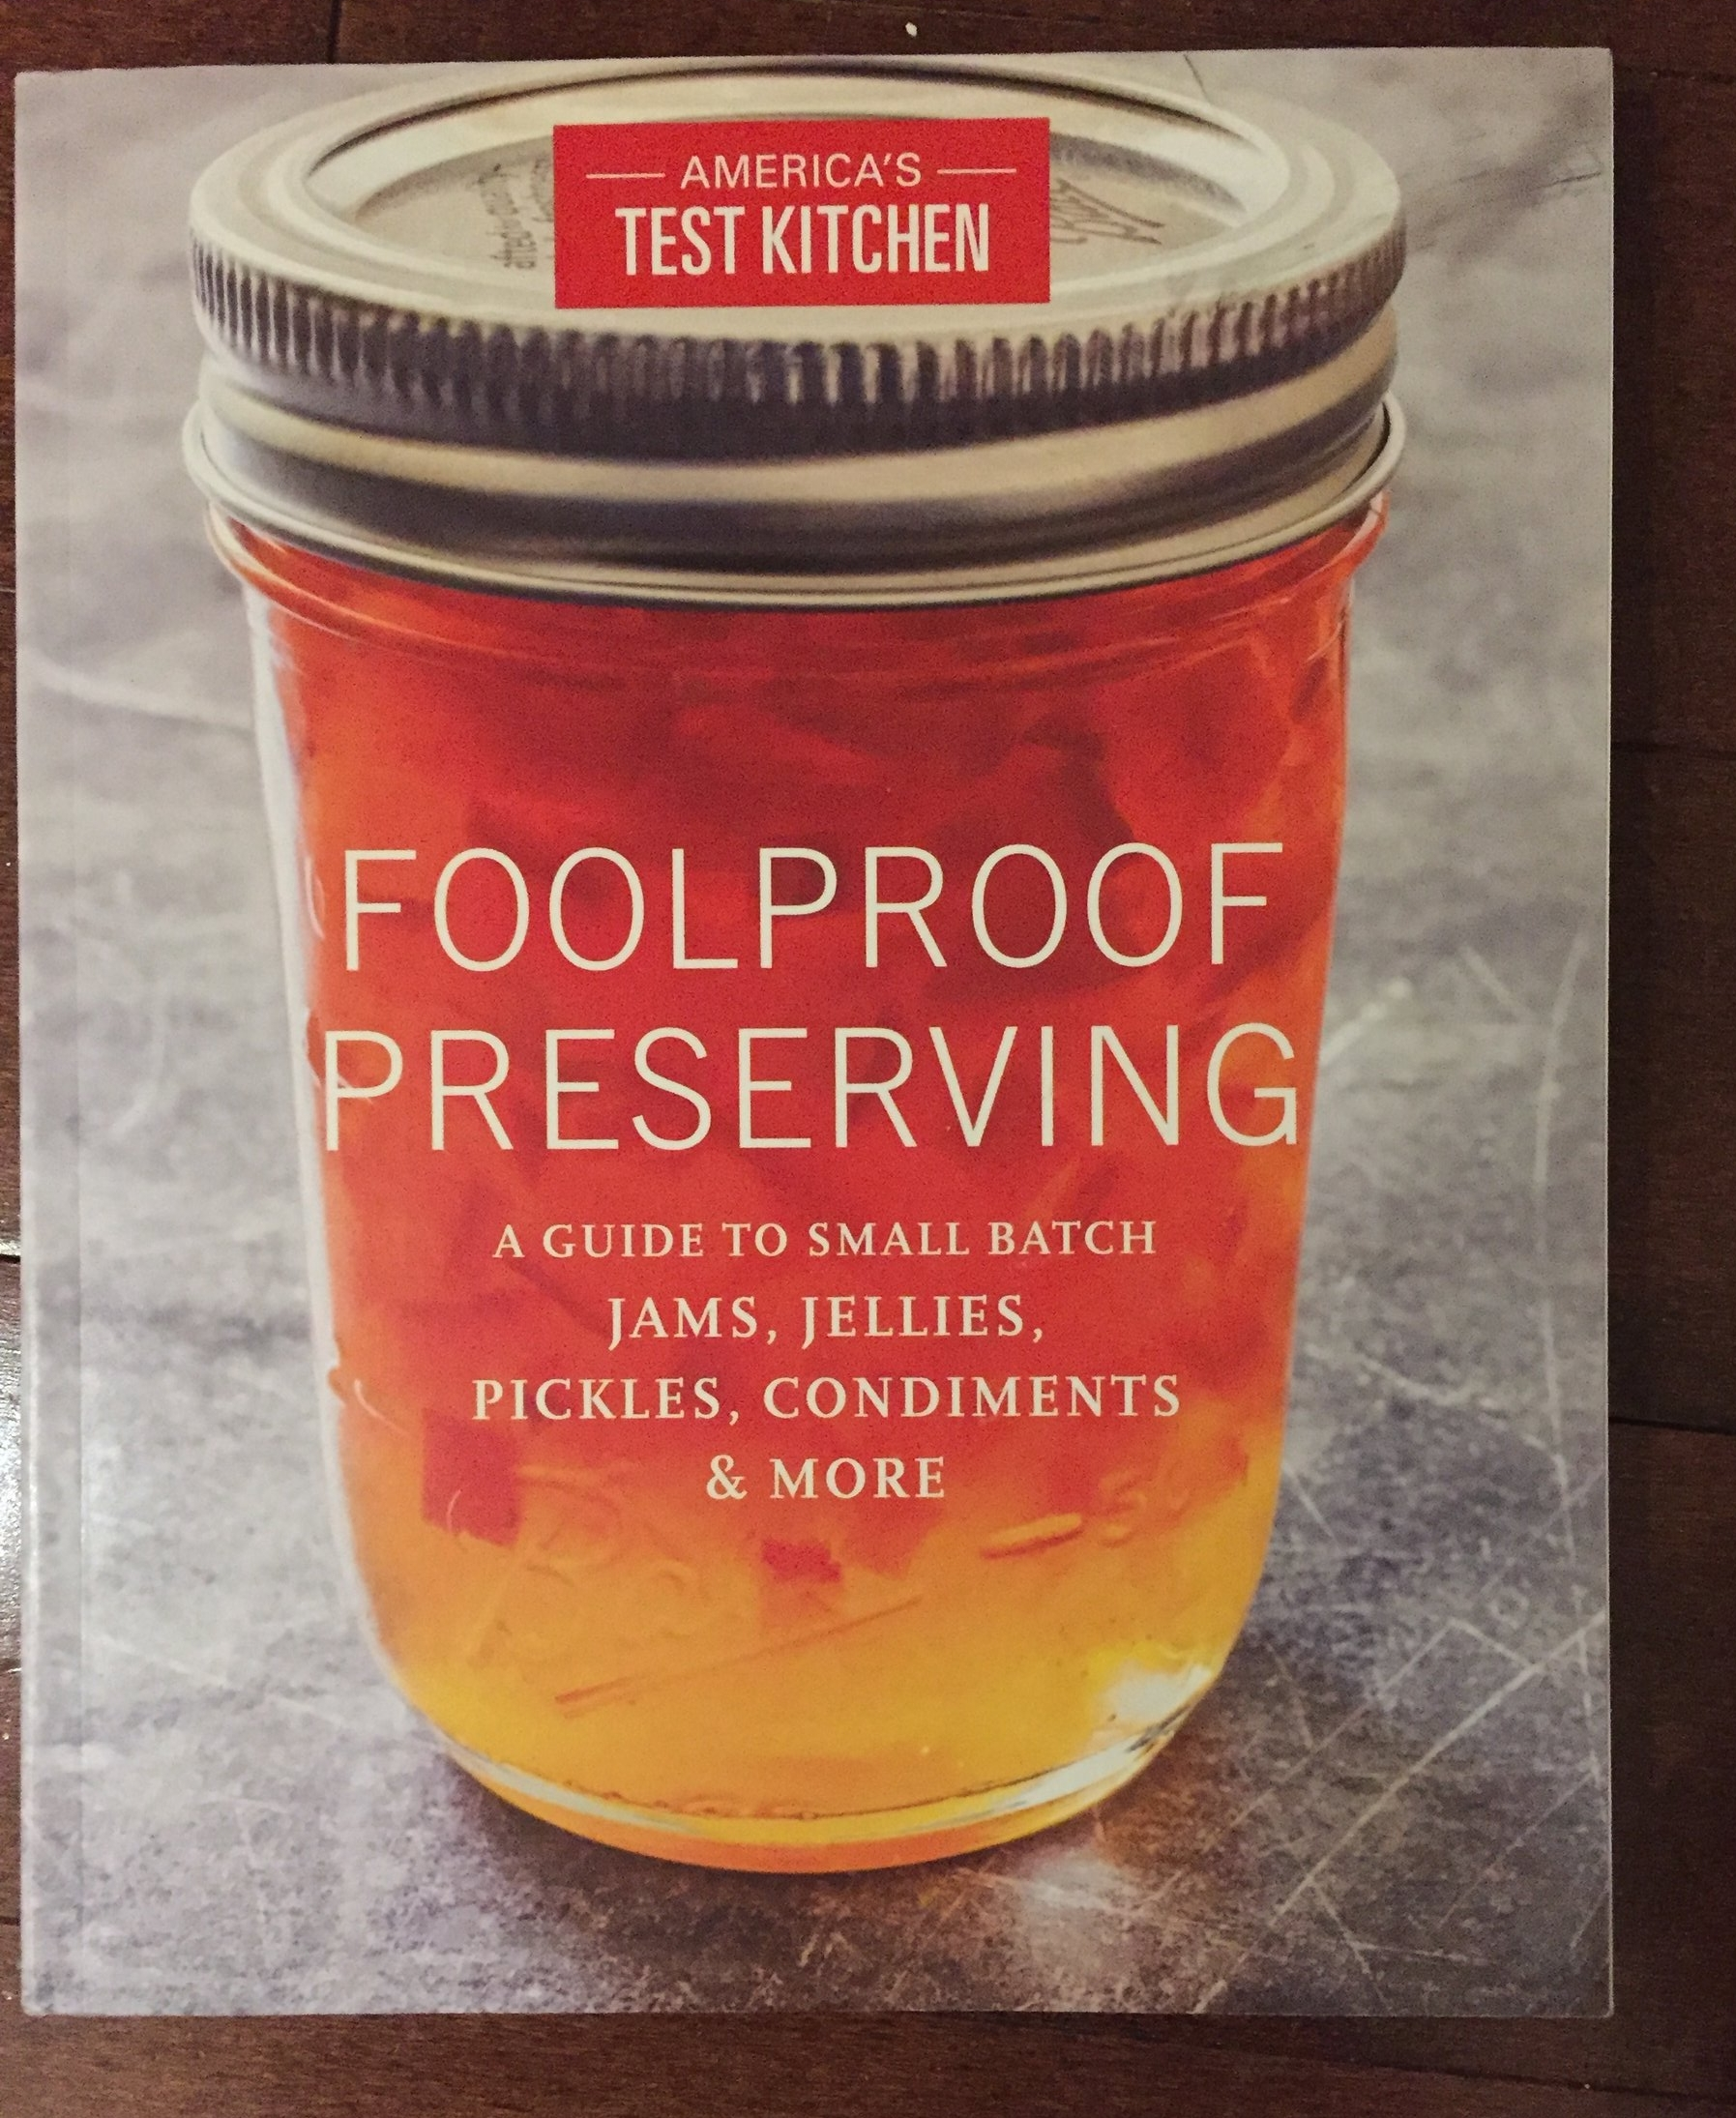 Fool Proof Preserving. You know anything by America's Test Kitchen is going to be great. This book is no exception. It gives detailed insight to canning, pickling and sauces. I have learned incredibly techniques and the reasoning behind those techniques. Their recipe for dill pickles is soooooooo good.